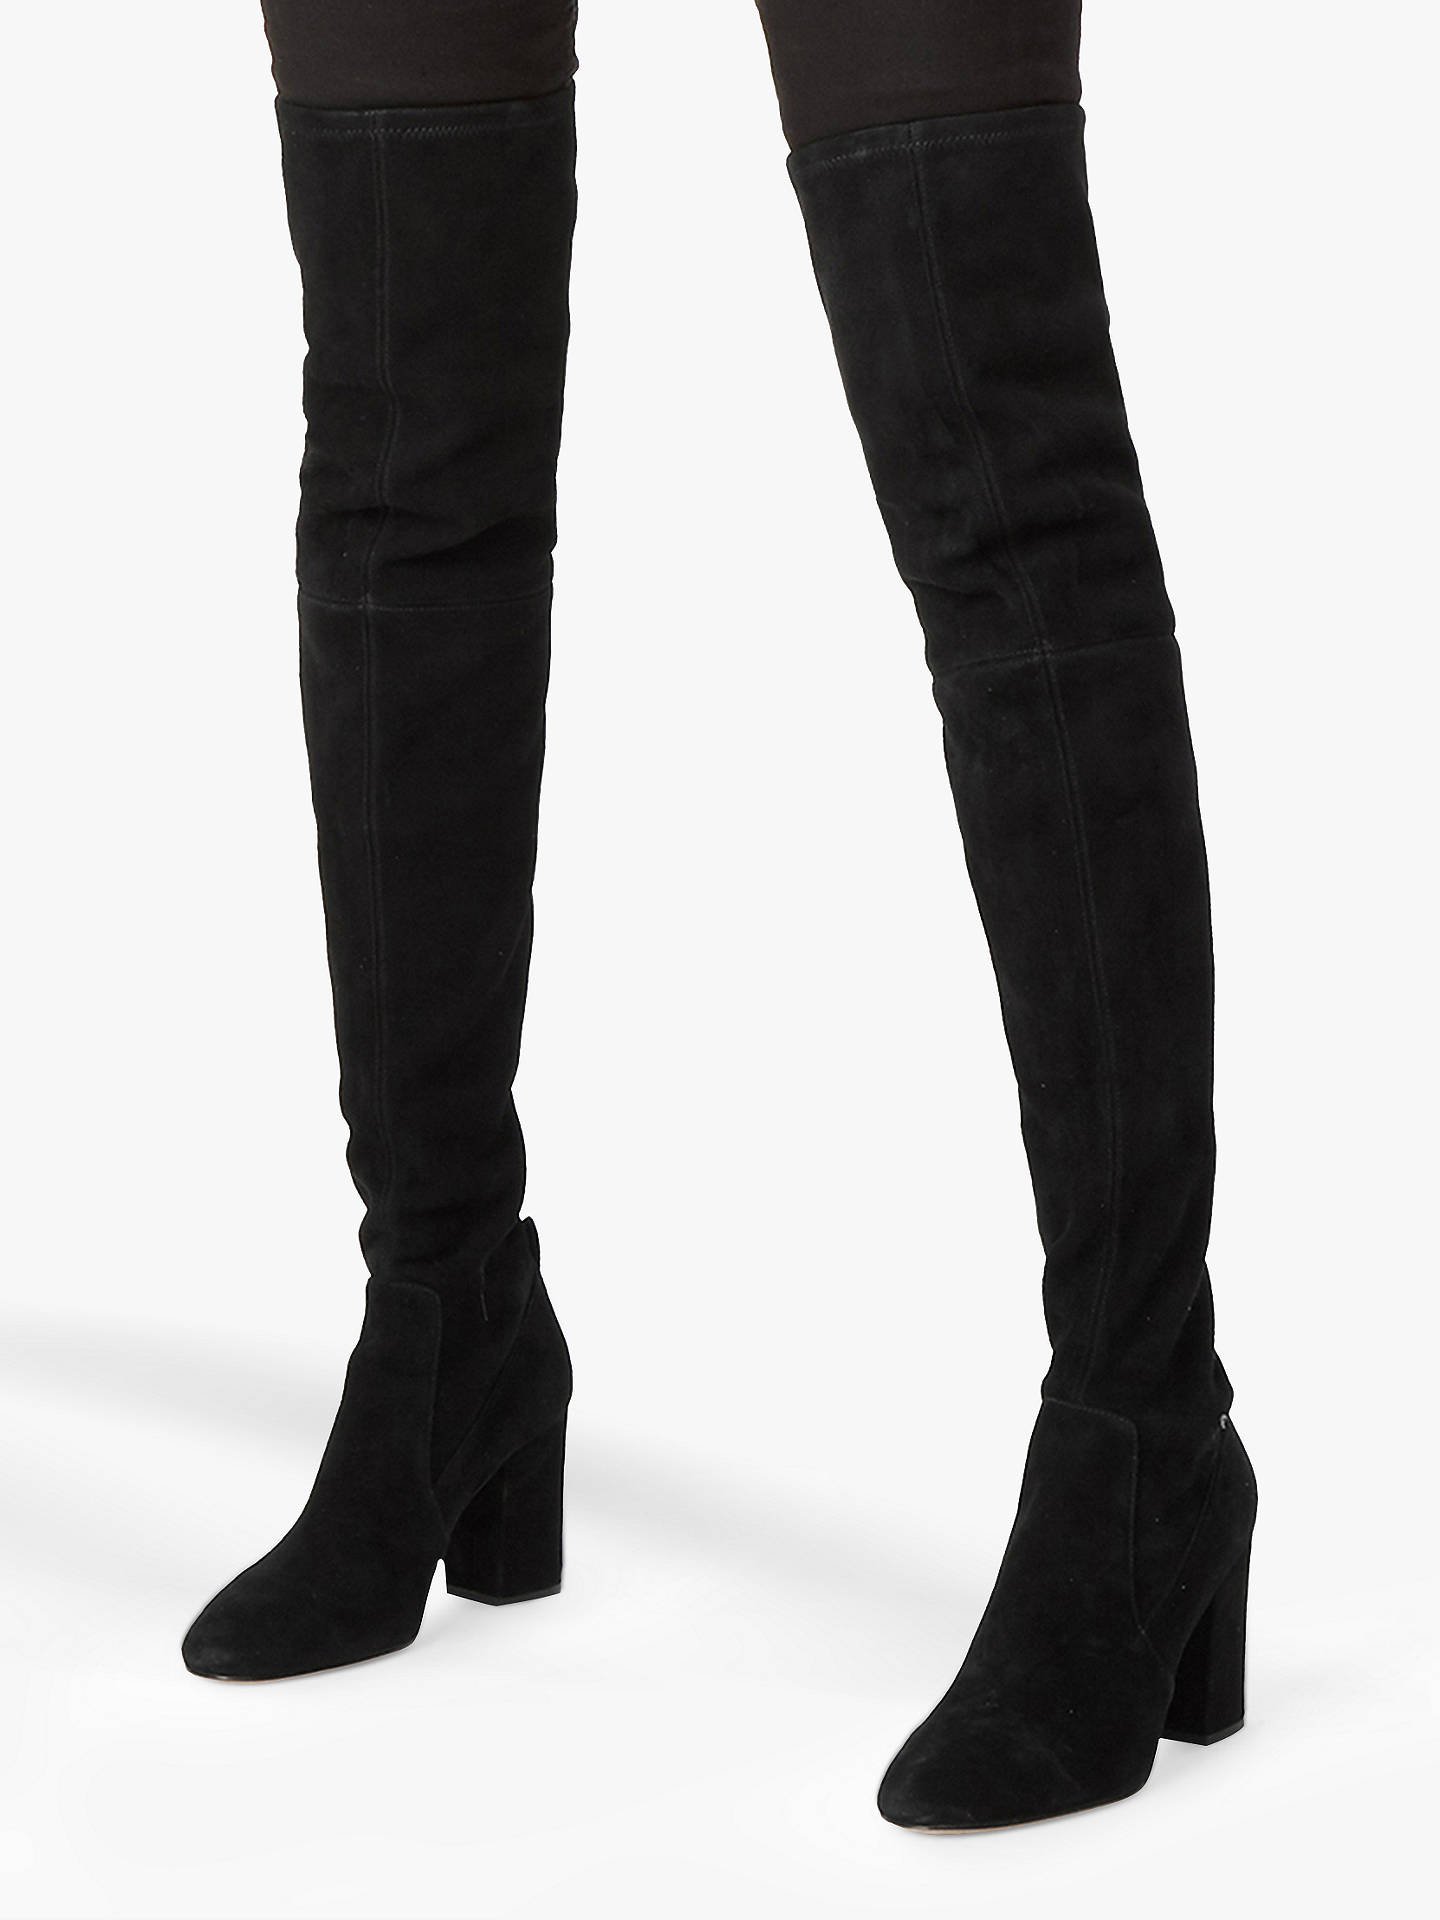 254d900fa4e5 ... Buy Coach Giselle Pull On Over The Knee Boots, Black Suede, 2 Online at  ...